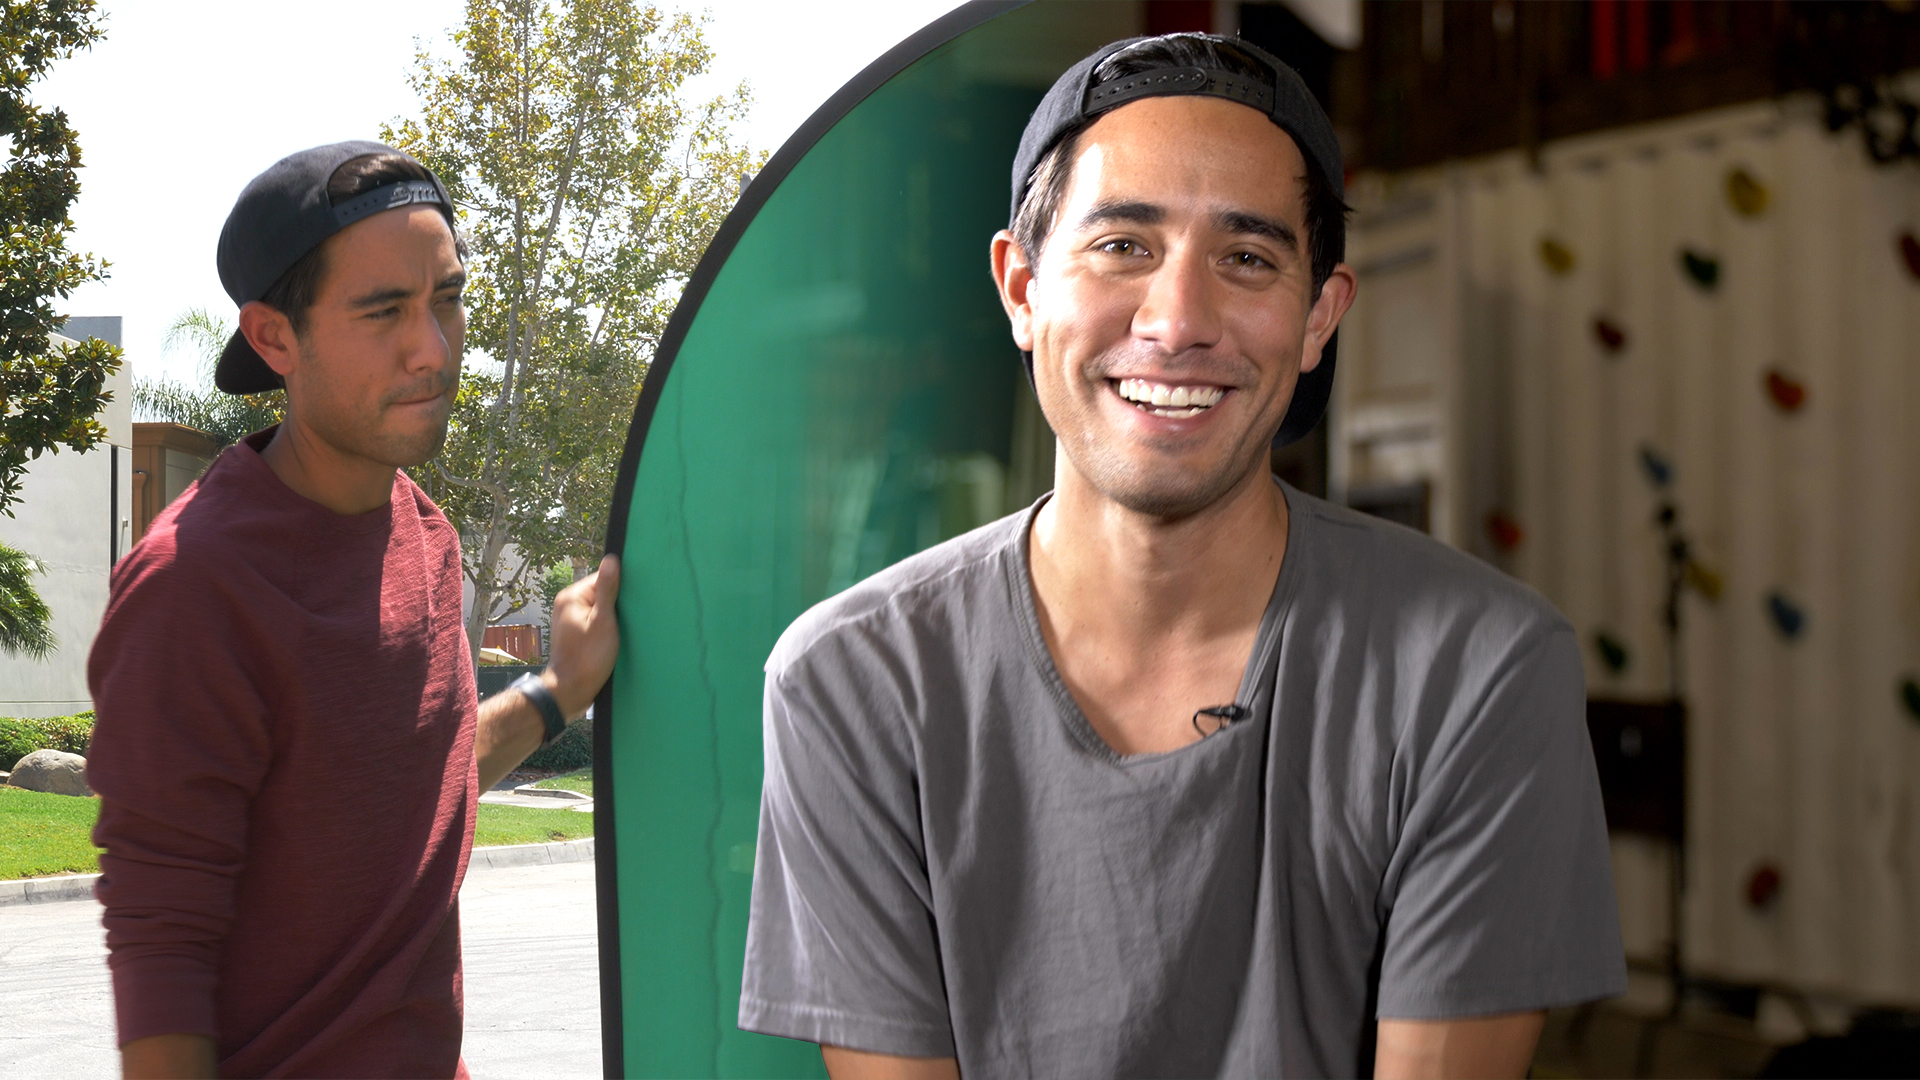 Video: How Zach King creates his mind-bending illusions on TikTok, YouTube and Instagram